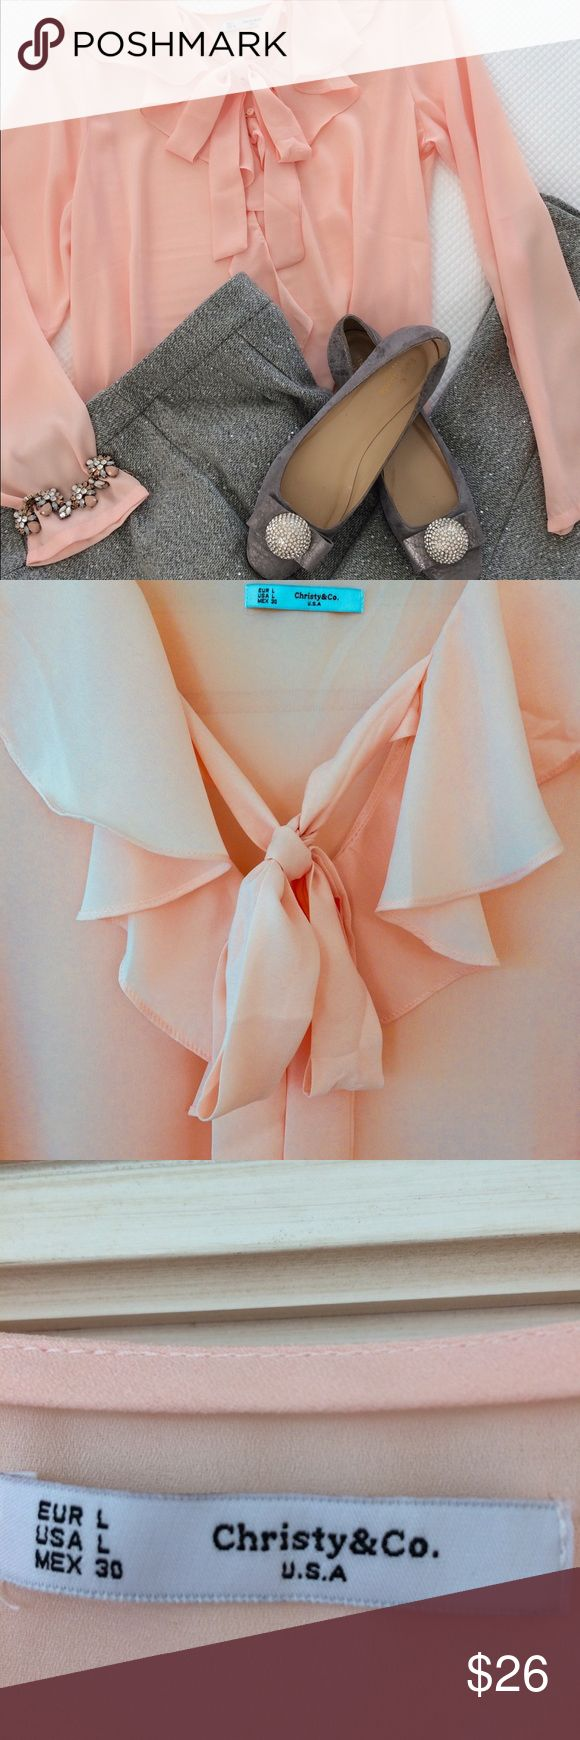 Ruffle tie neckline peach blouse This lovely feminine soft peach blouse will make any lady feel feminine. It's soft chiffon fabric drapes beautifully. It is longer in the back and can be worn out and flowing or tucked in. Beautiful with skirts or pants. Brand new never worn. Tops Blouses